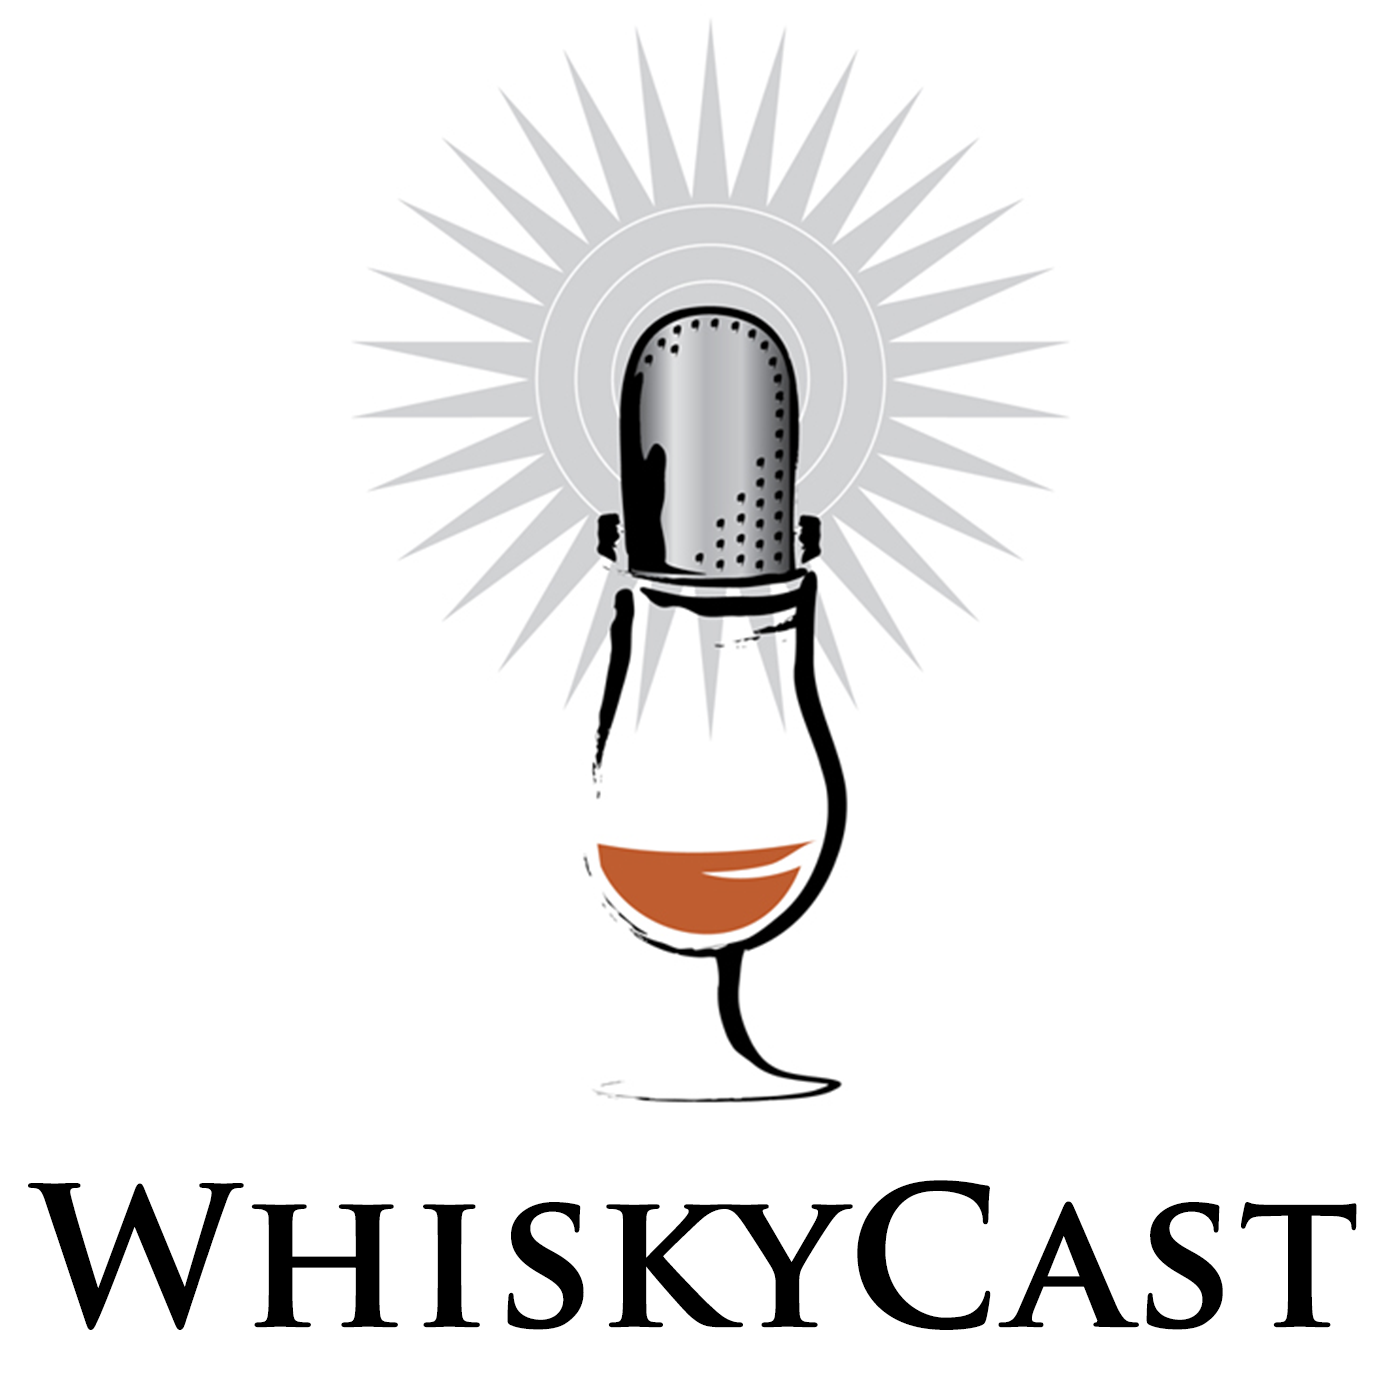 WhiskyCast Episode 431: June 29, 2013